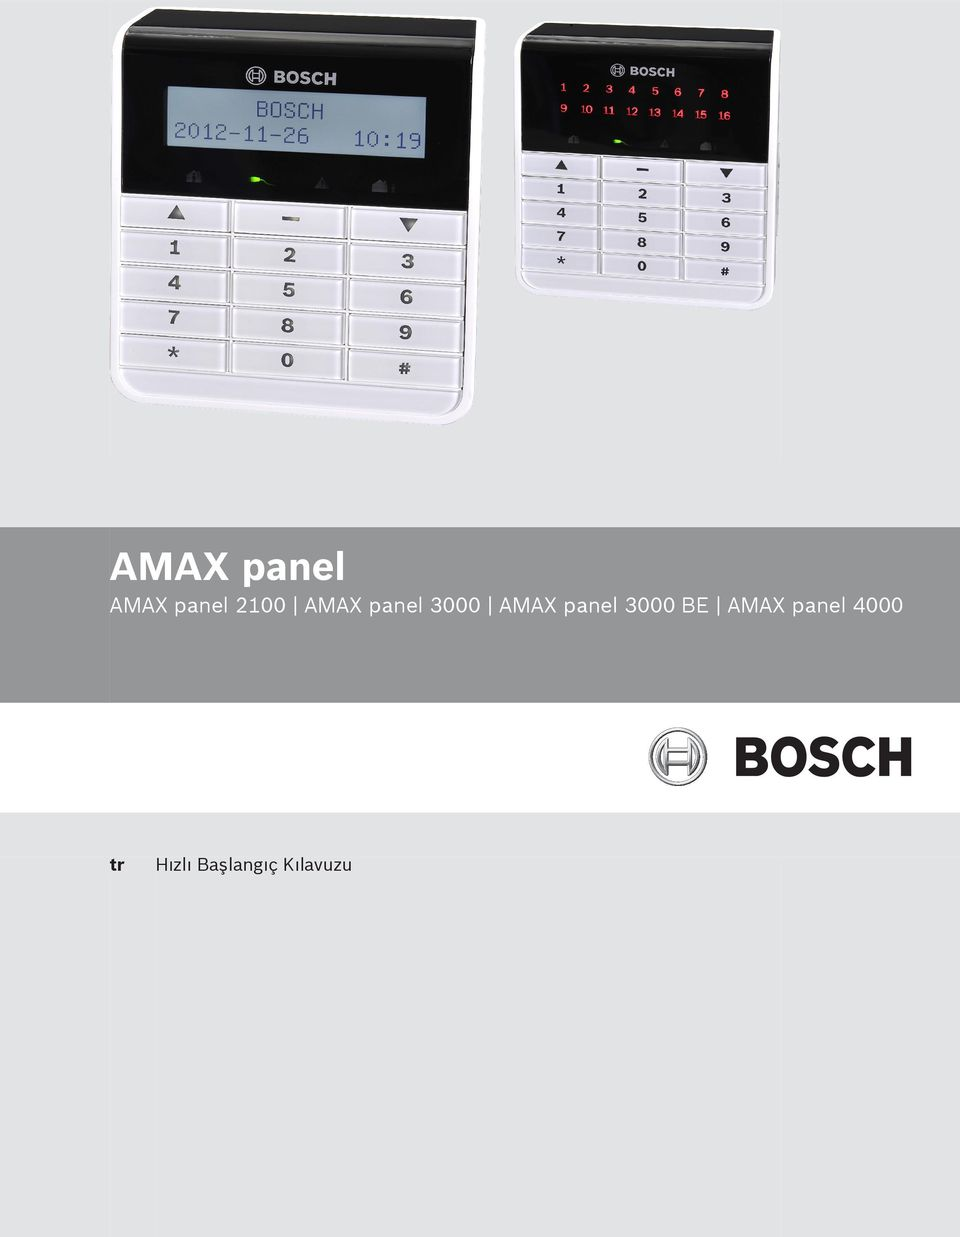 3000 BE AMAX panel 4000 tr